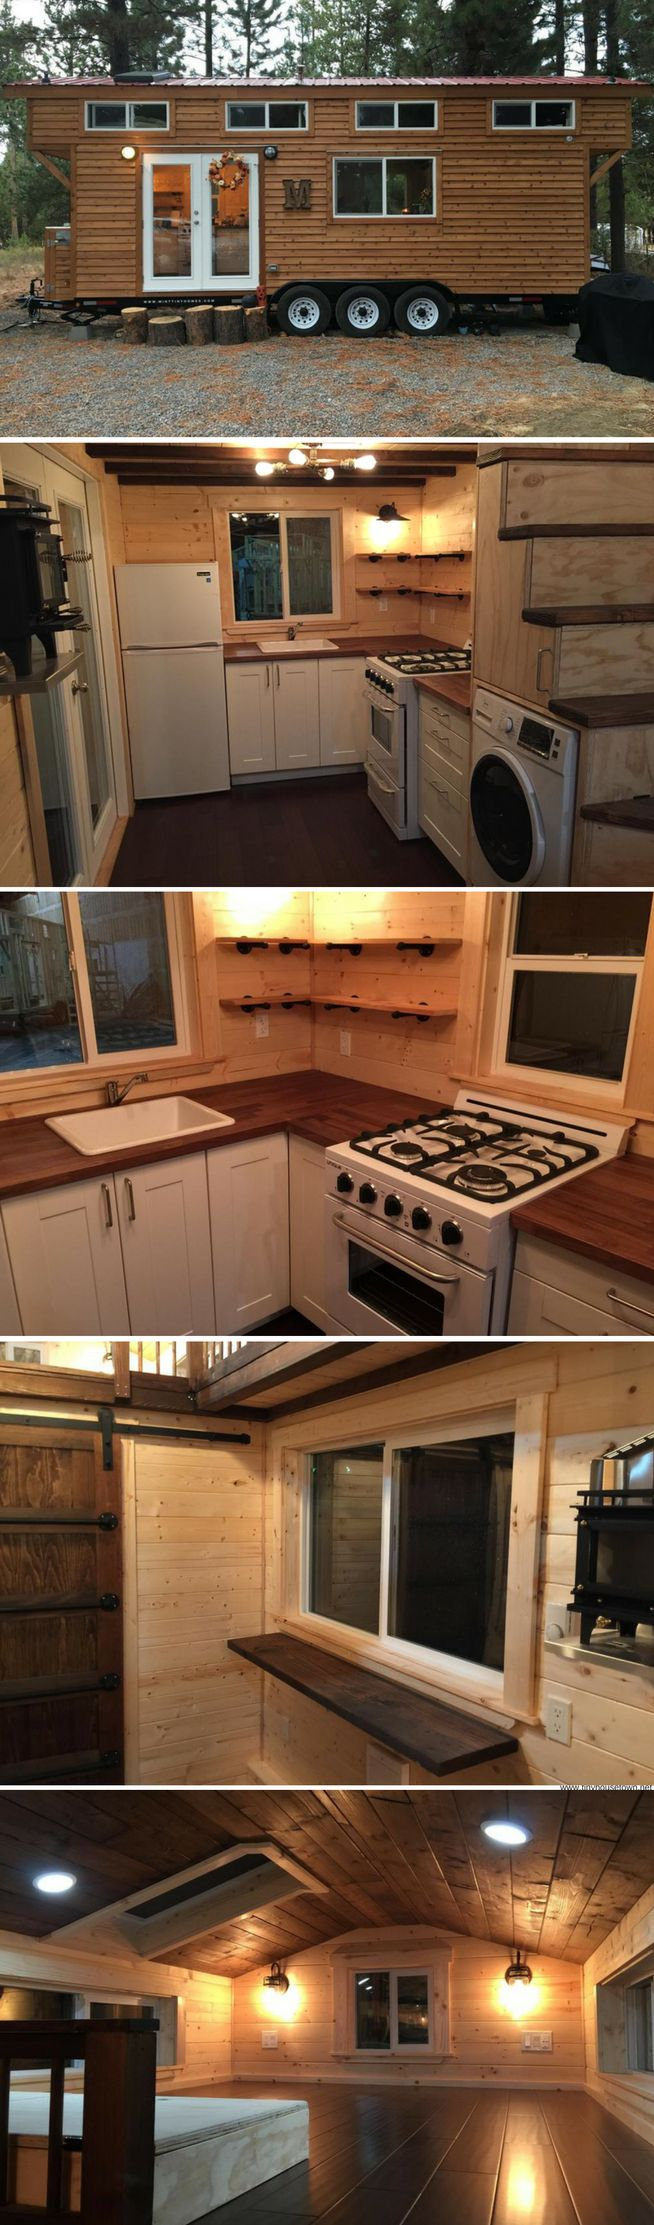 A cozy luxe tiny house available for sale in Bend, OR (280 sq ft)